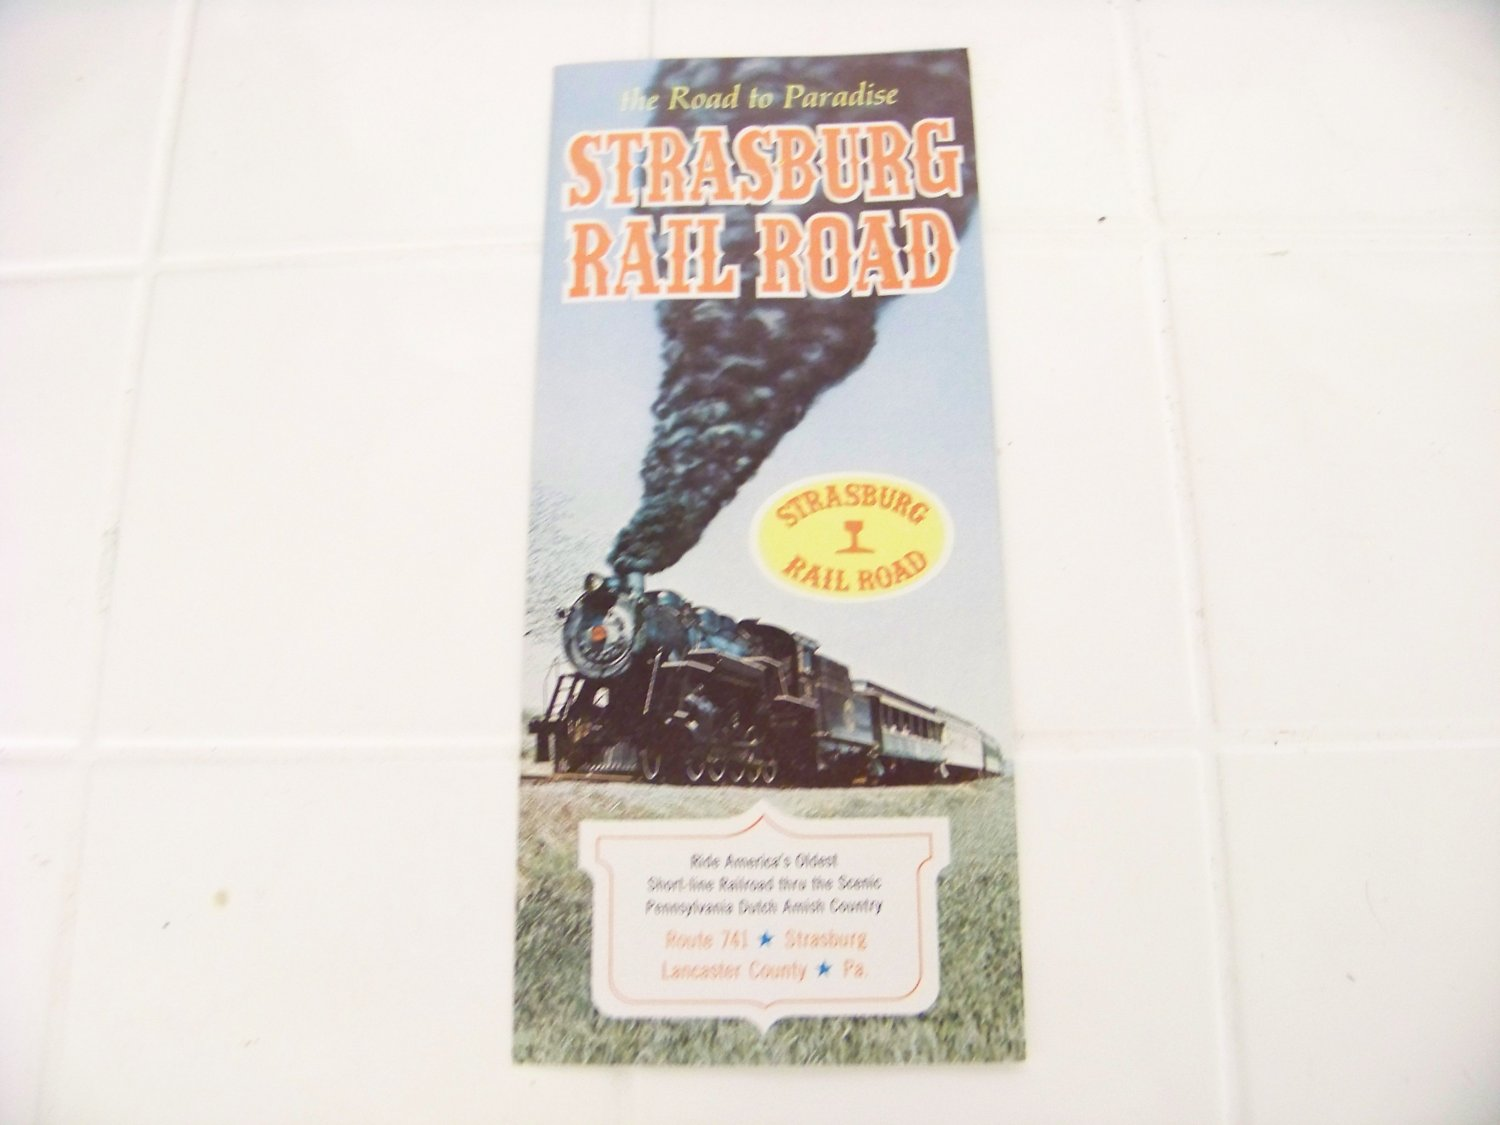 Strasburg railroad the road to paradise 1970 operating schedule pamphlet